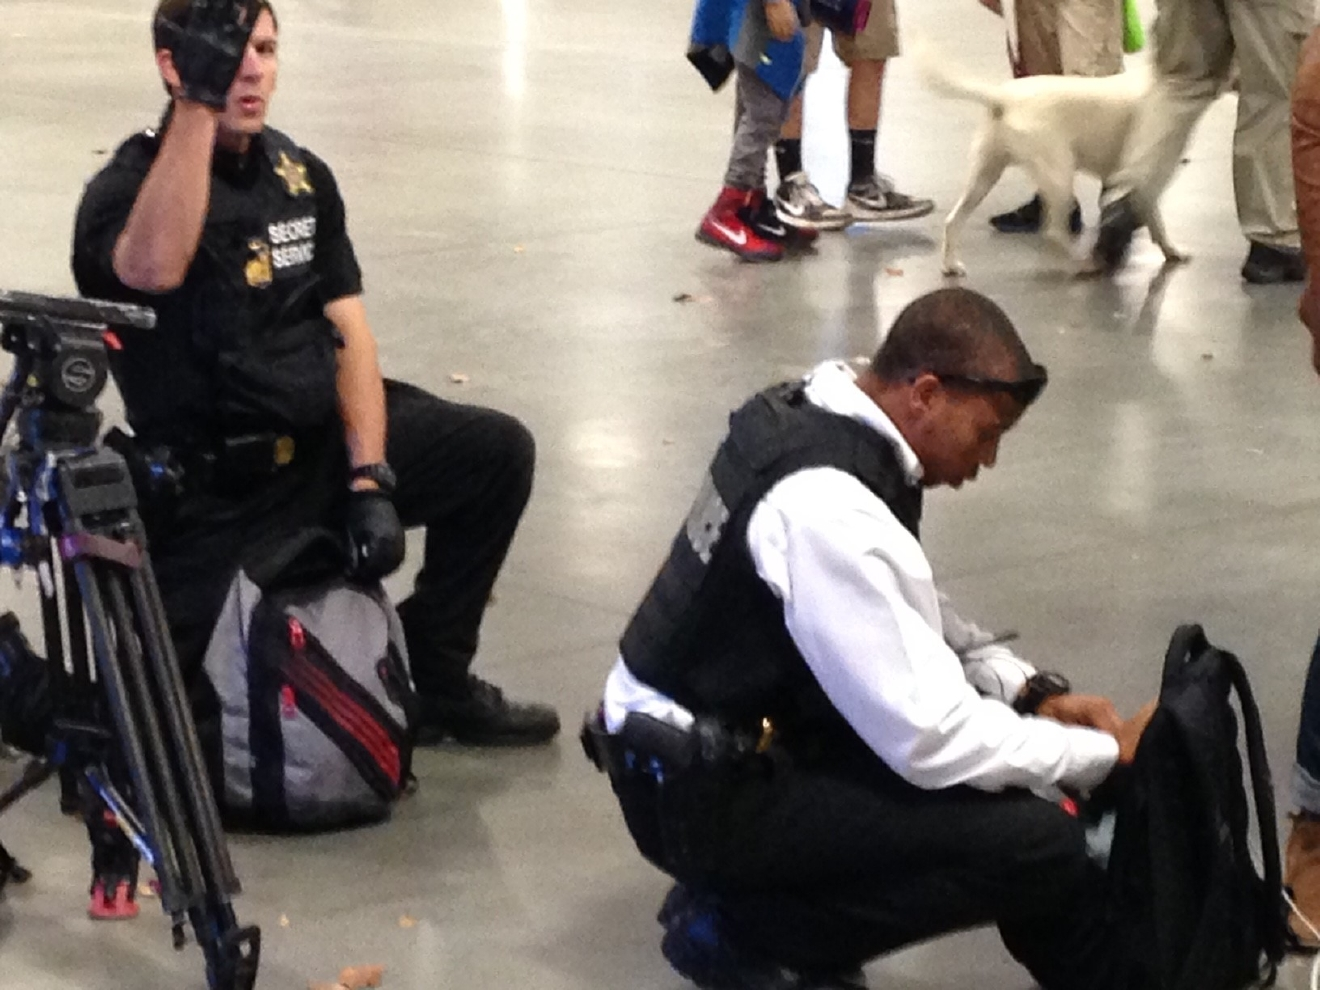 Police carefully checking media bags at the DonaldTrump rally in Asheville. (Photo credit: WLOS staff)